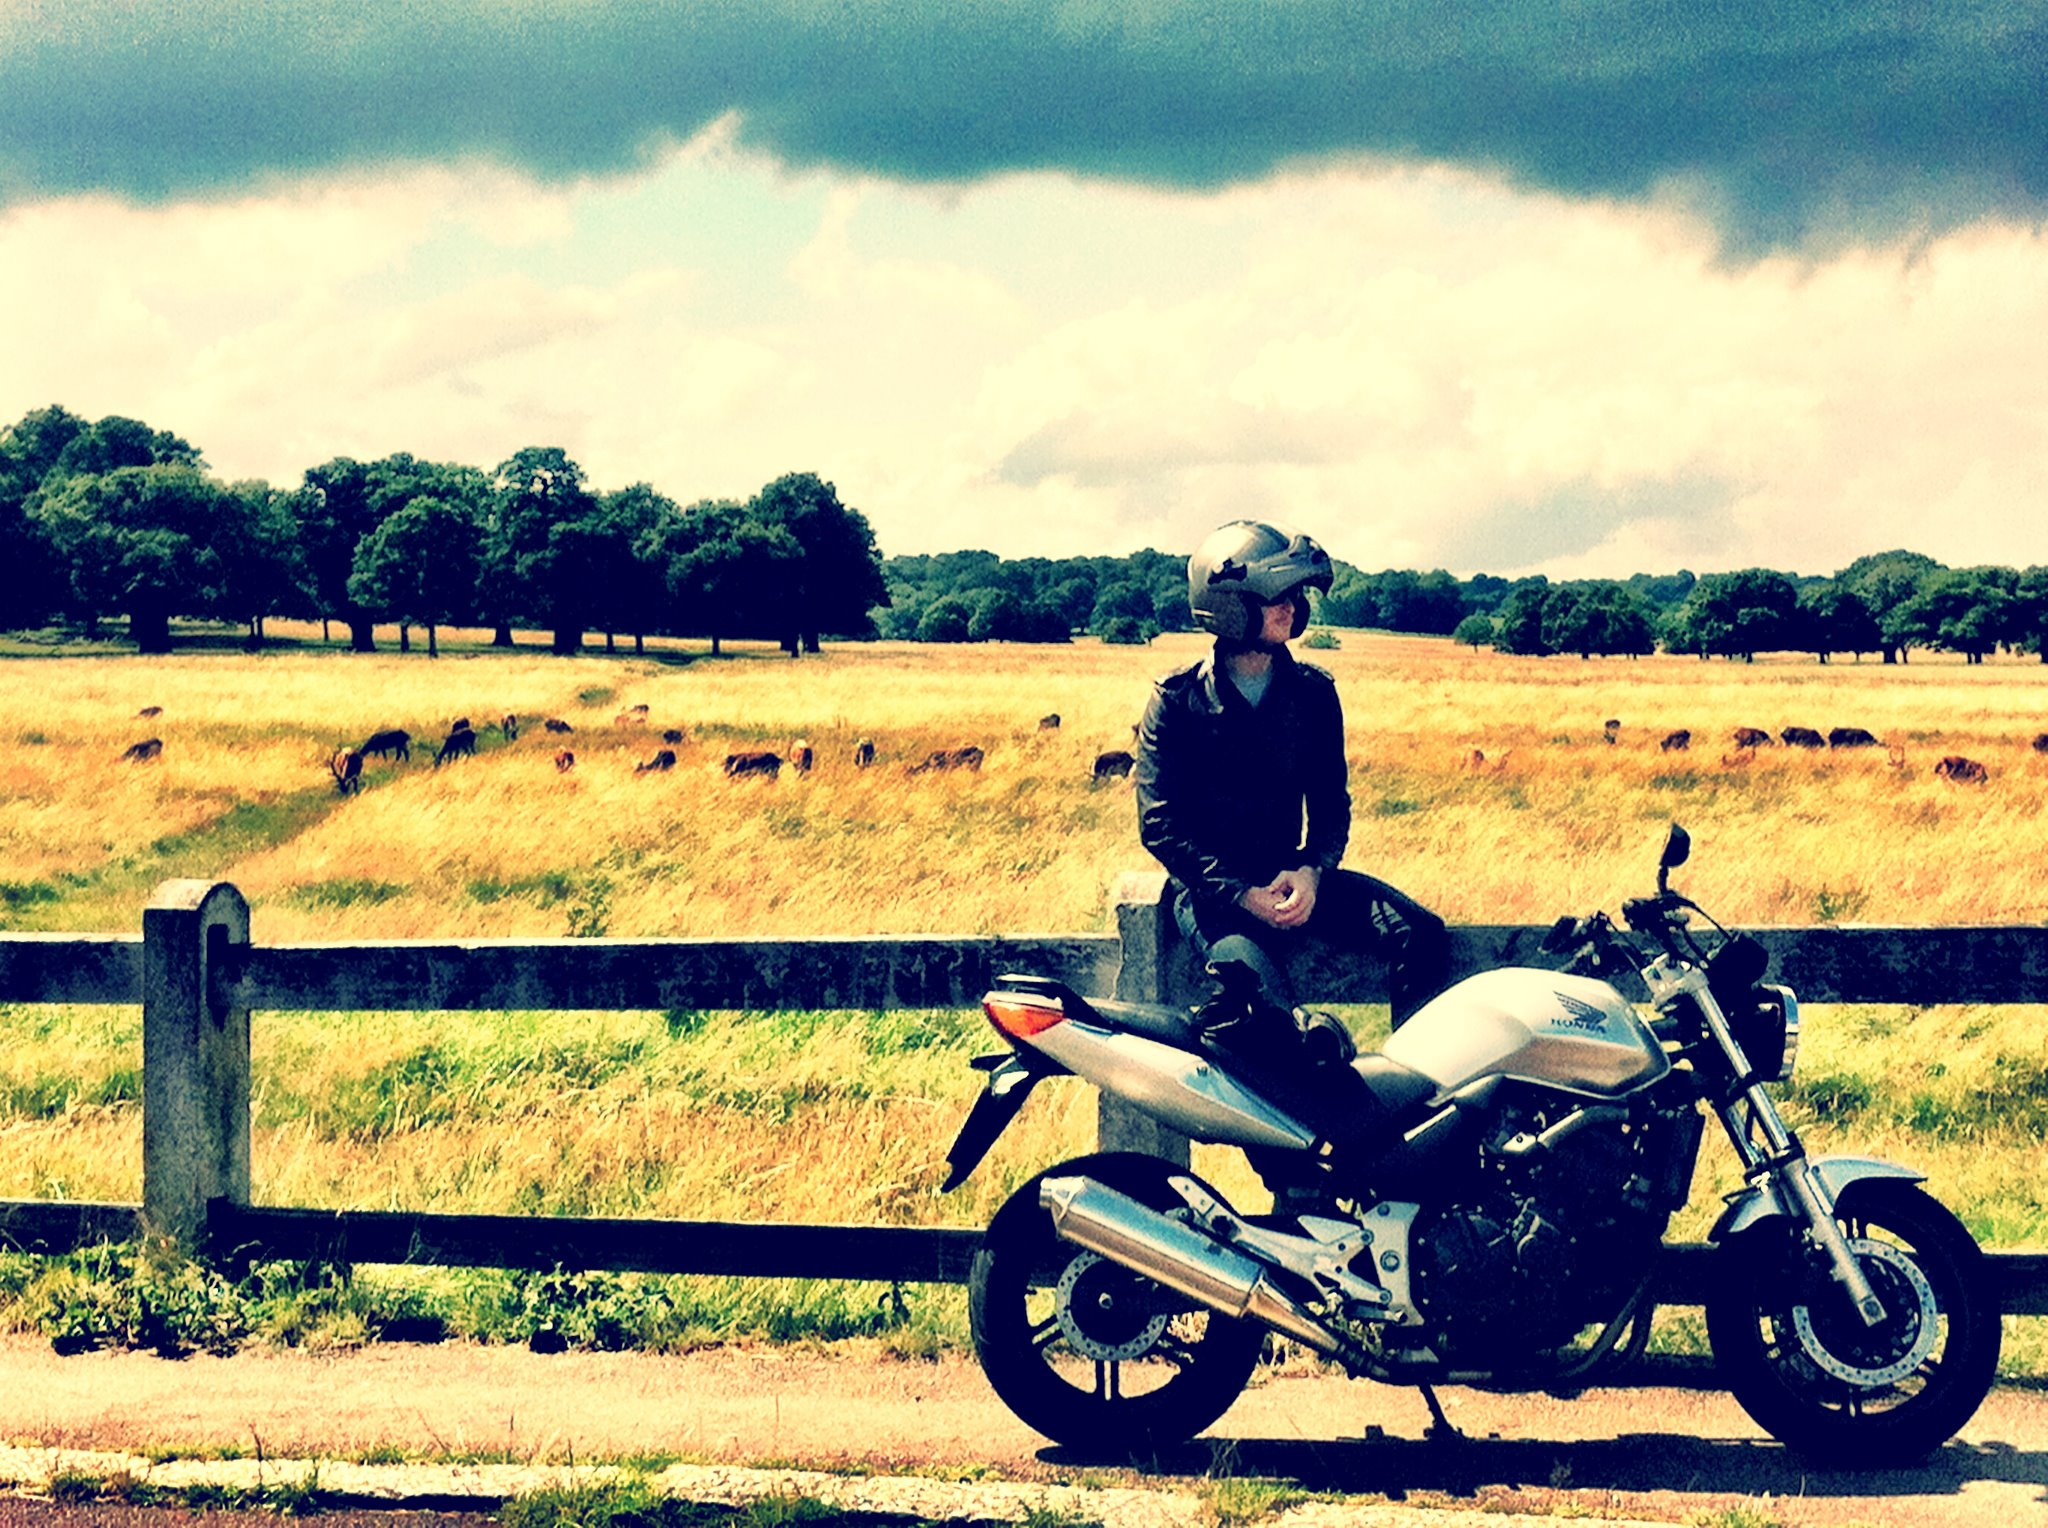 Riding my Honda motorcycle around RIchmond park in the summer. We stopped on to watch the deer.